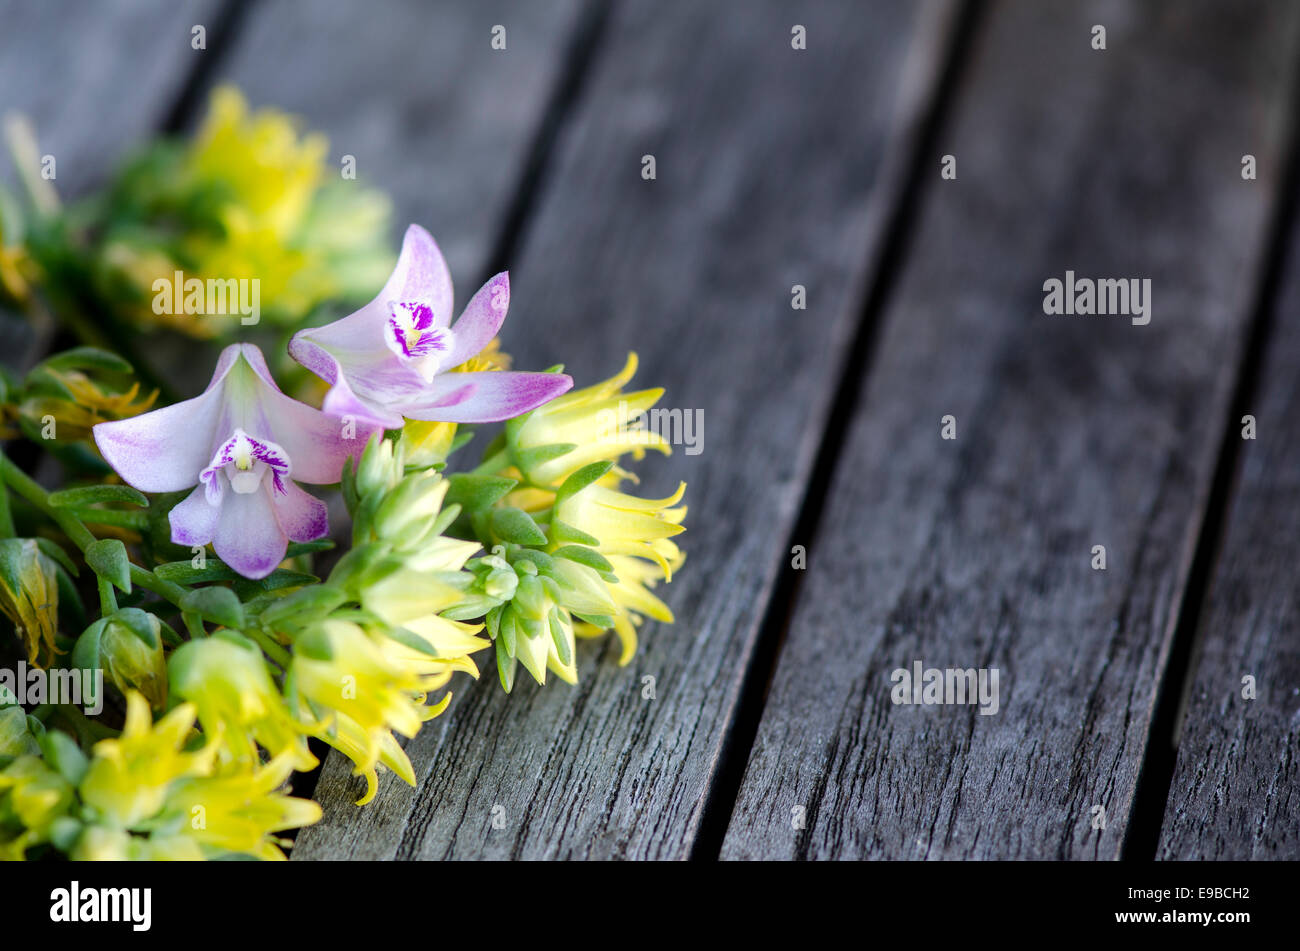 Orchids Amongst Yellow Succulents Flowers On Rustic Boards Stock